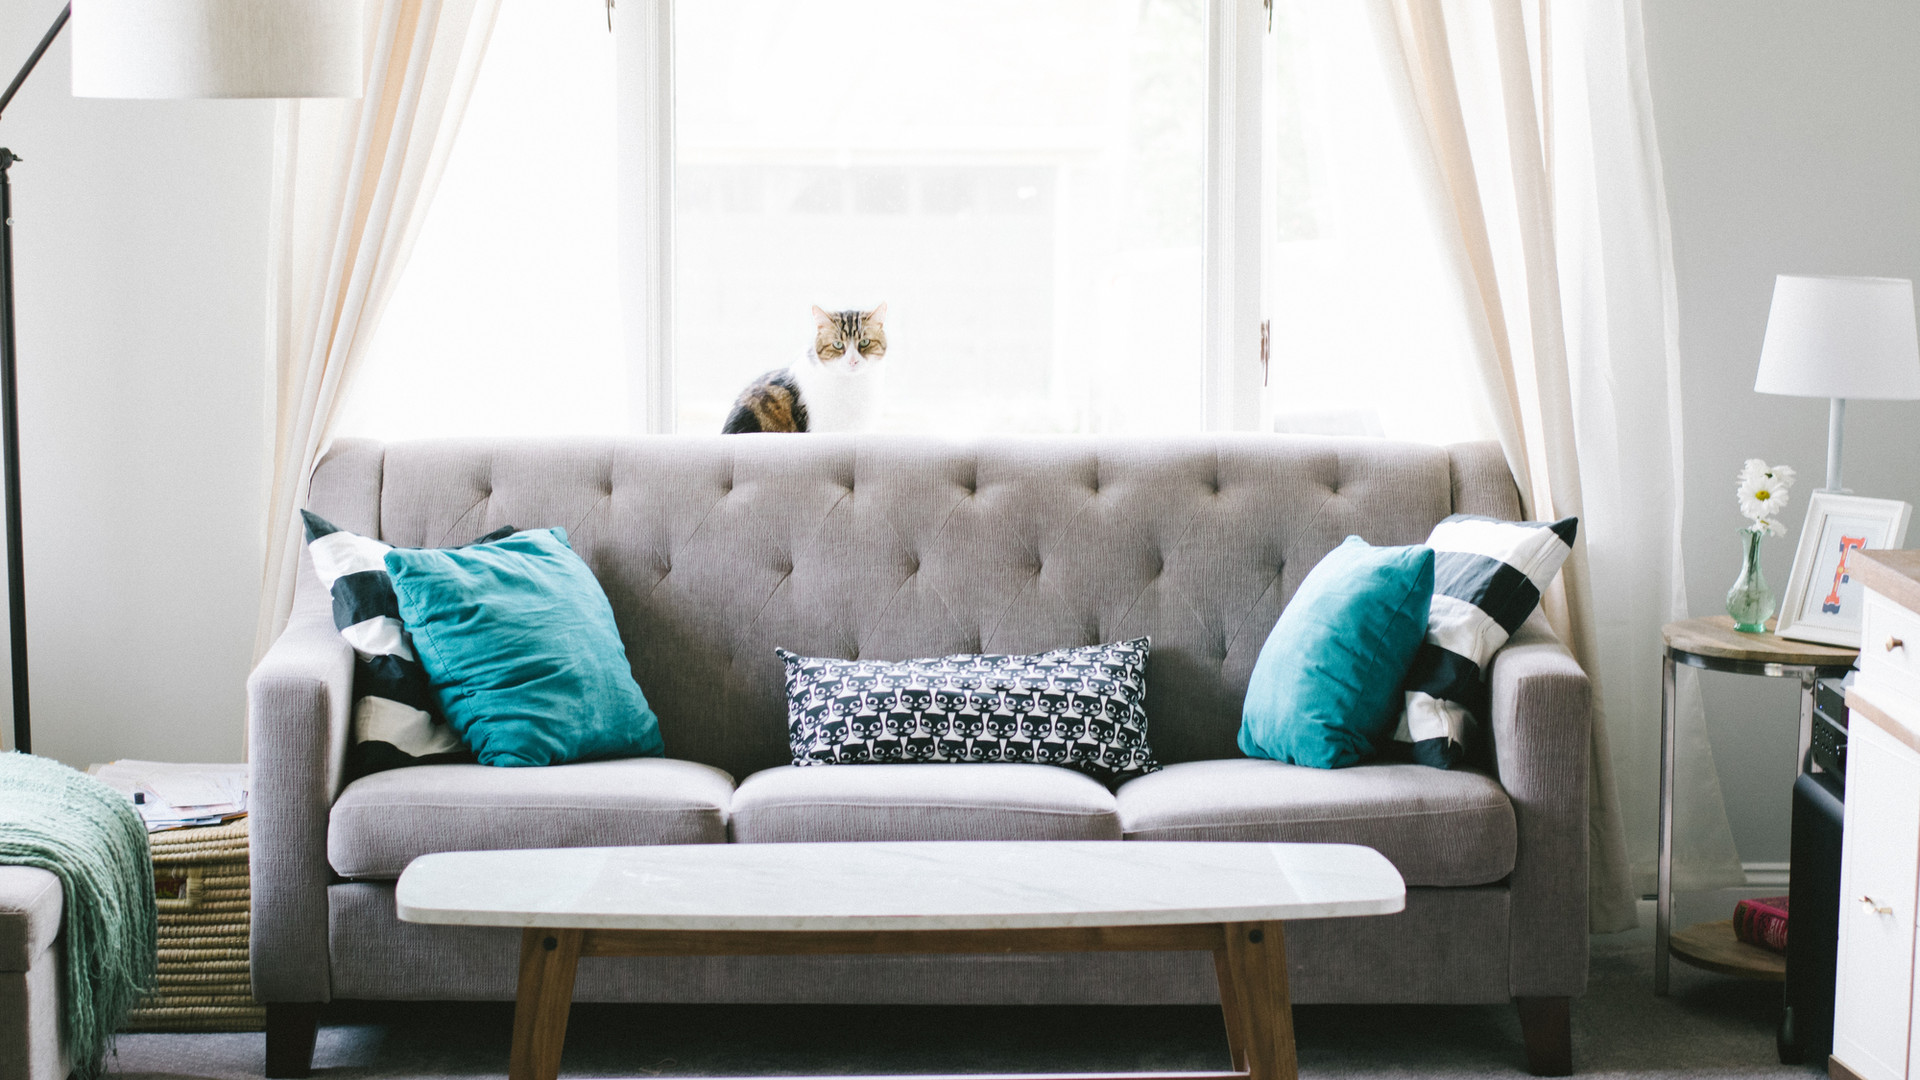 Space planning and accessorize a living room